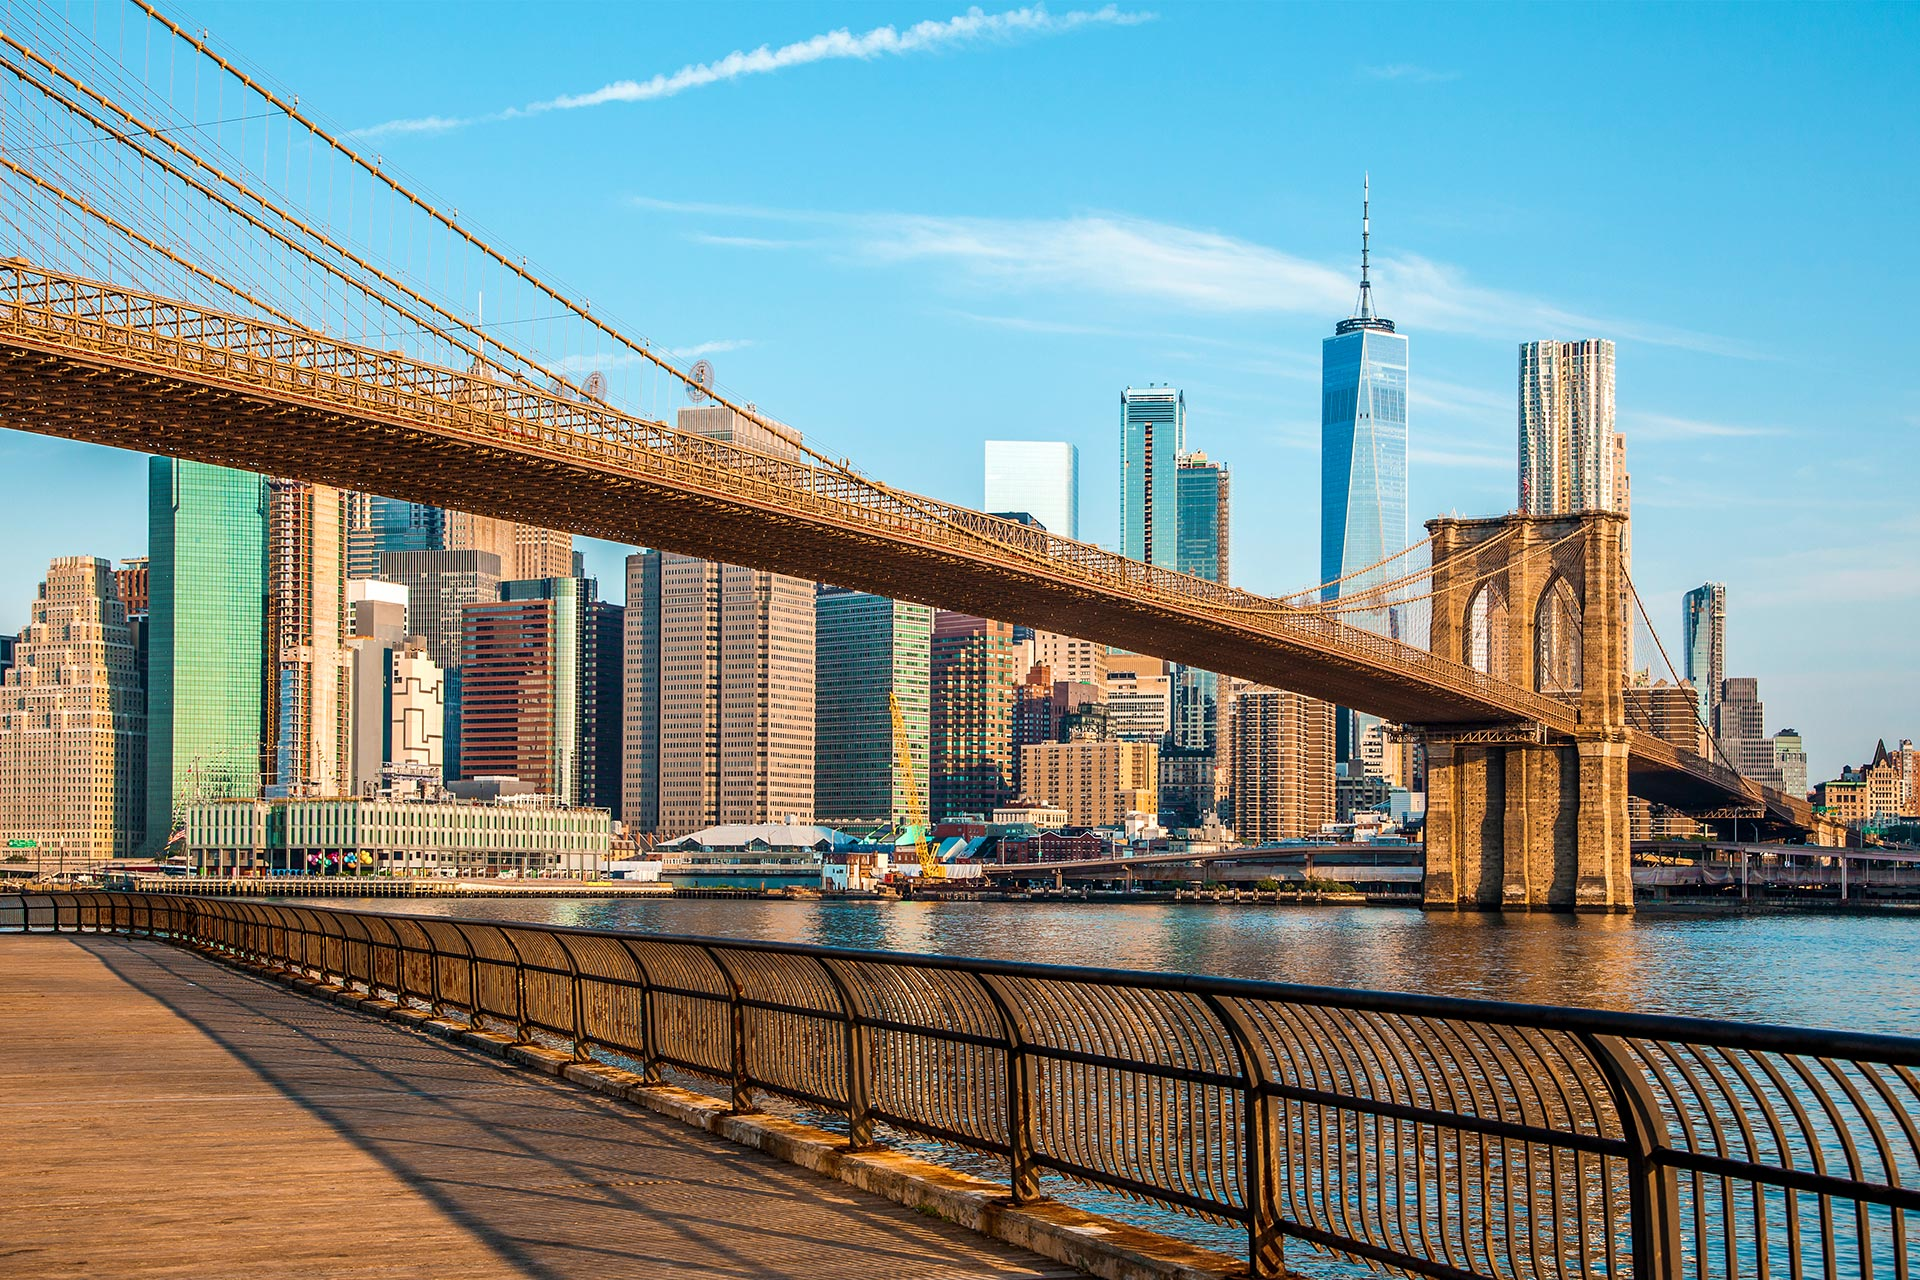 Sejur New York, 7 zile - septembrie 2021